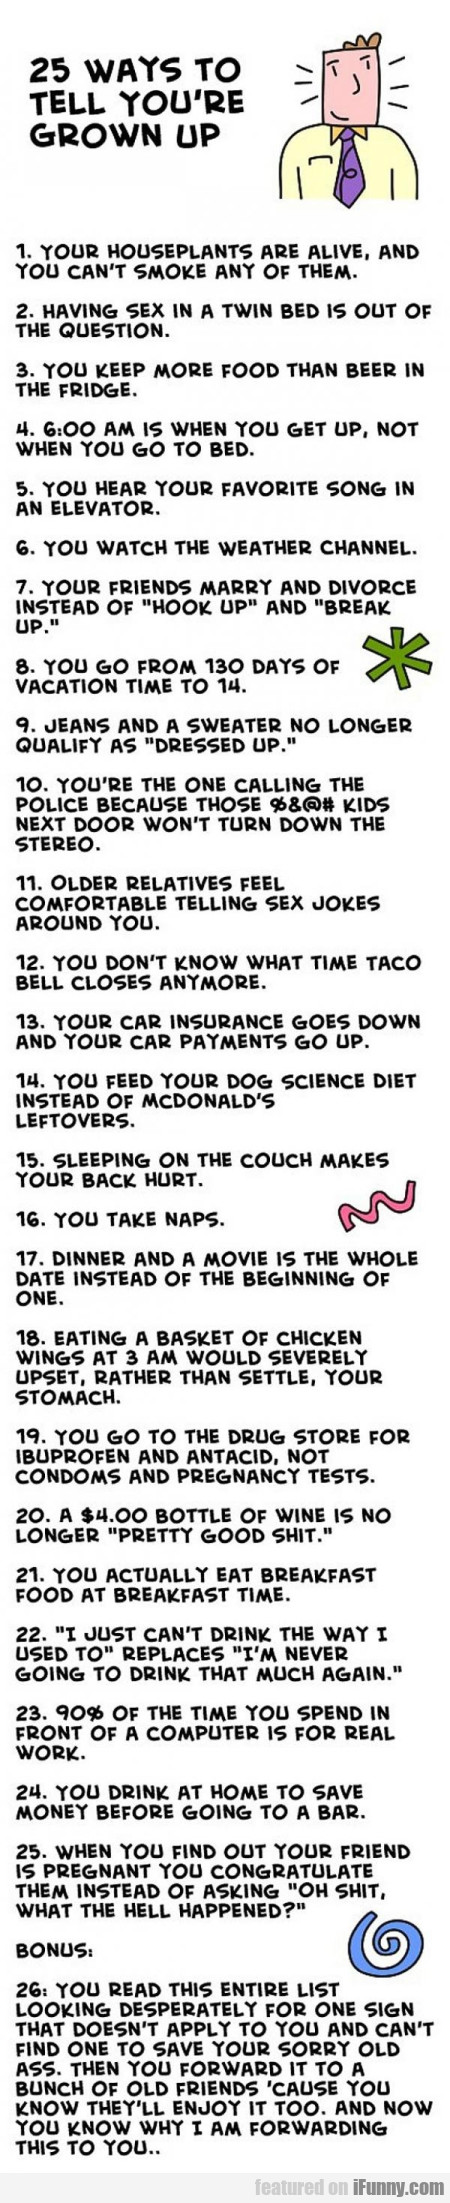 25 Ways To Tell You're